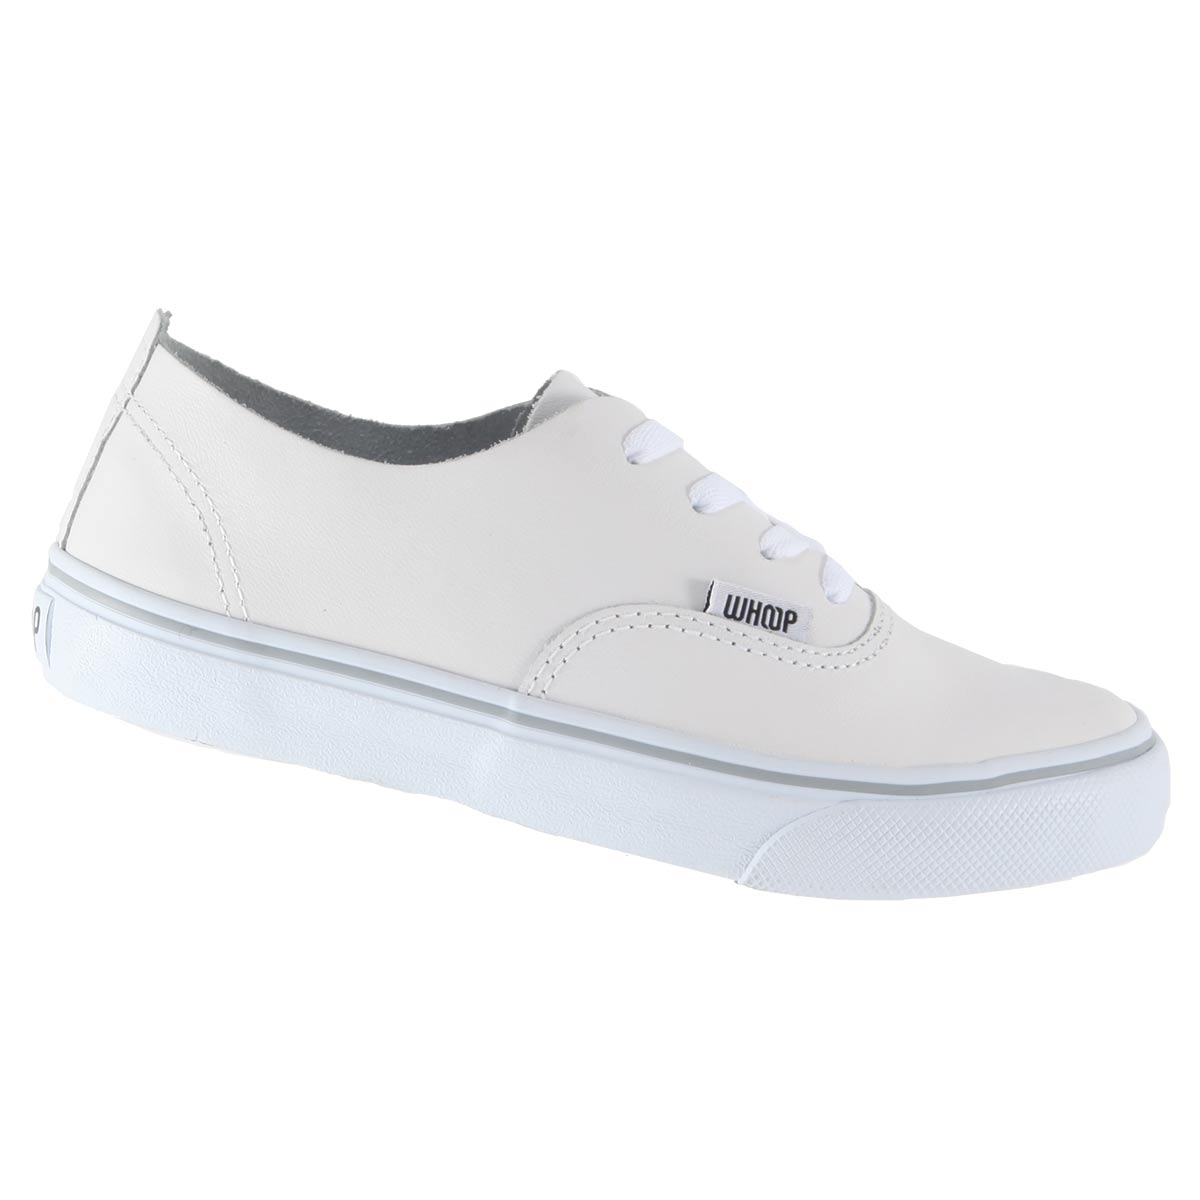 Tênis Whoop By Ramarim Unissex Casual Couro W7523